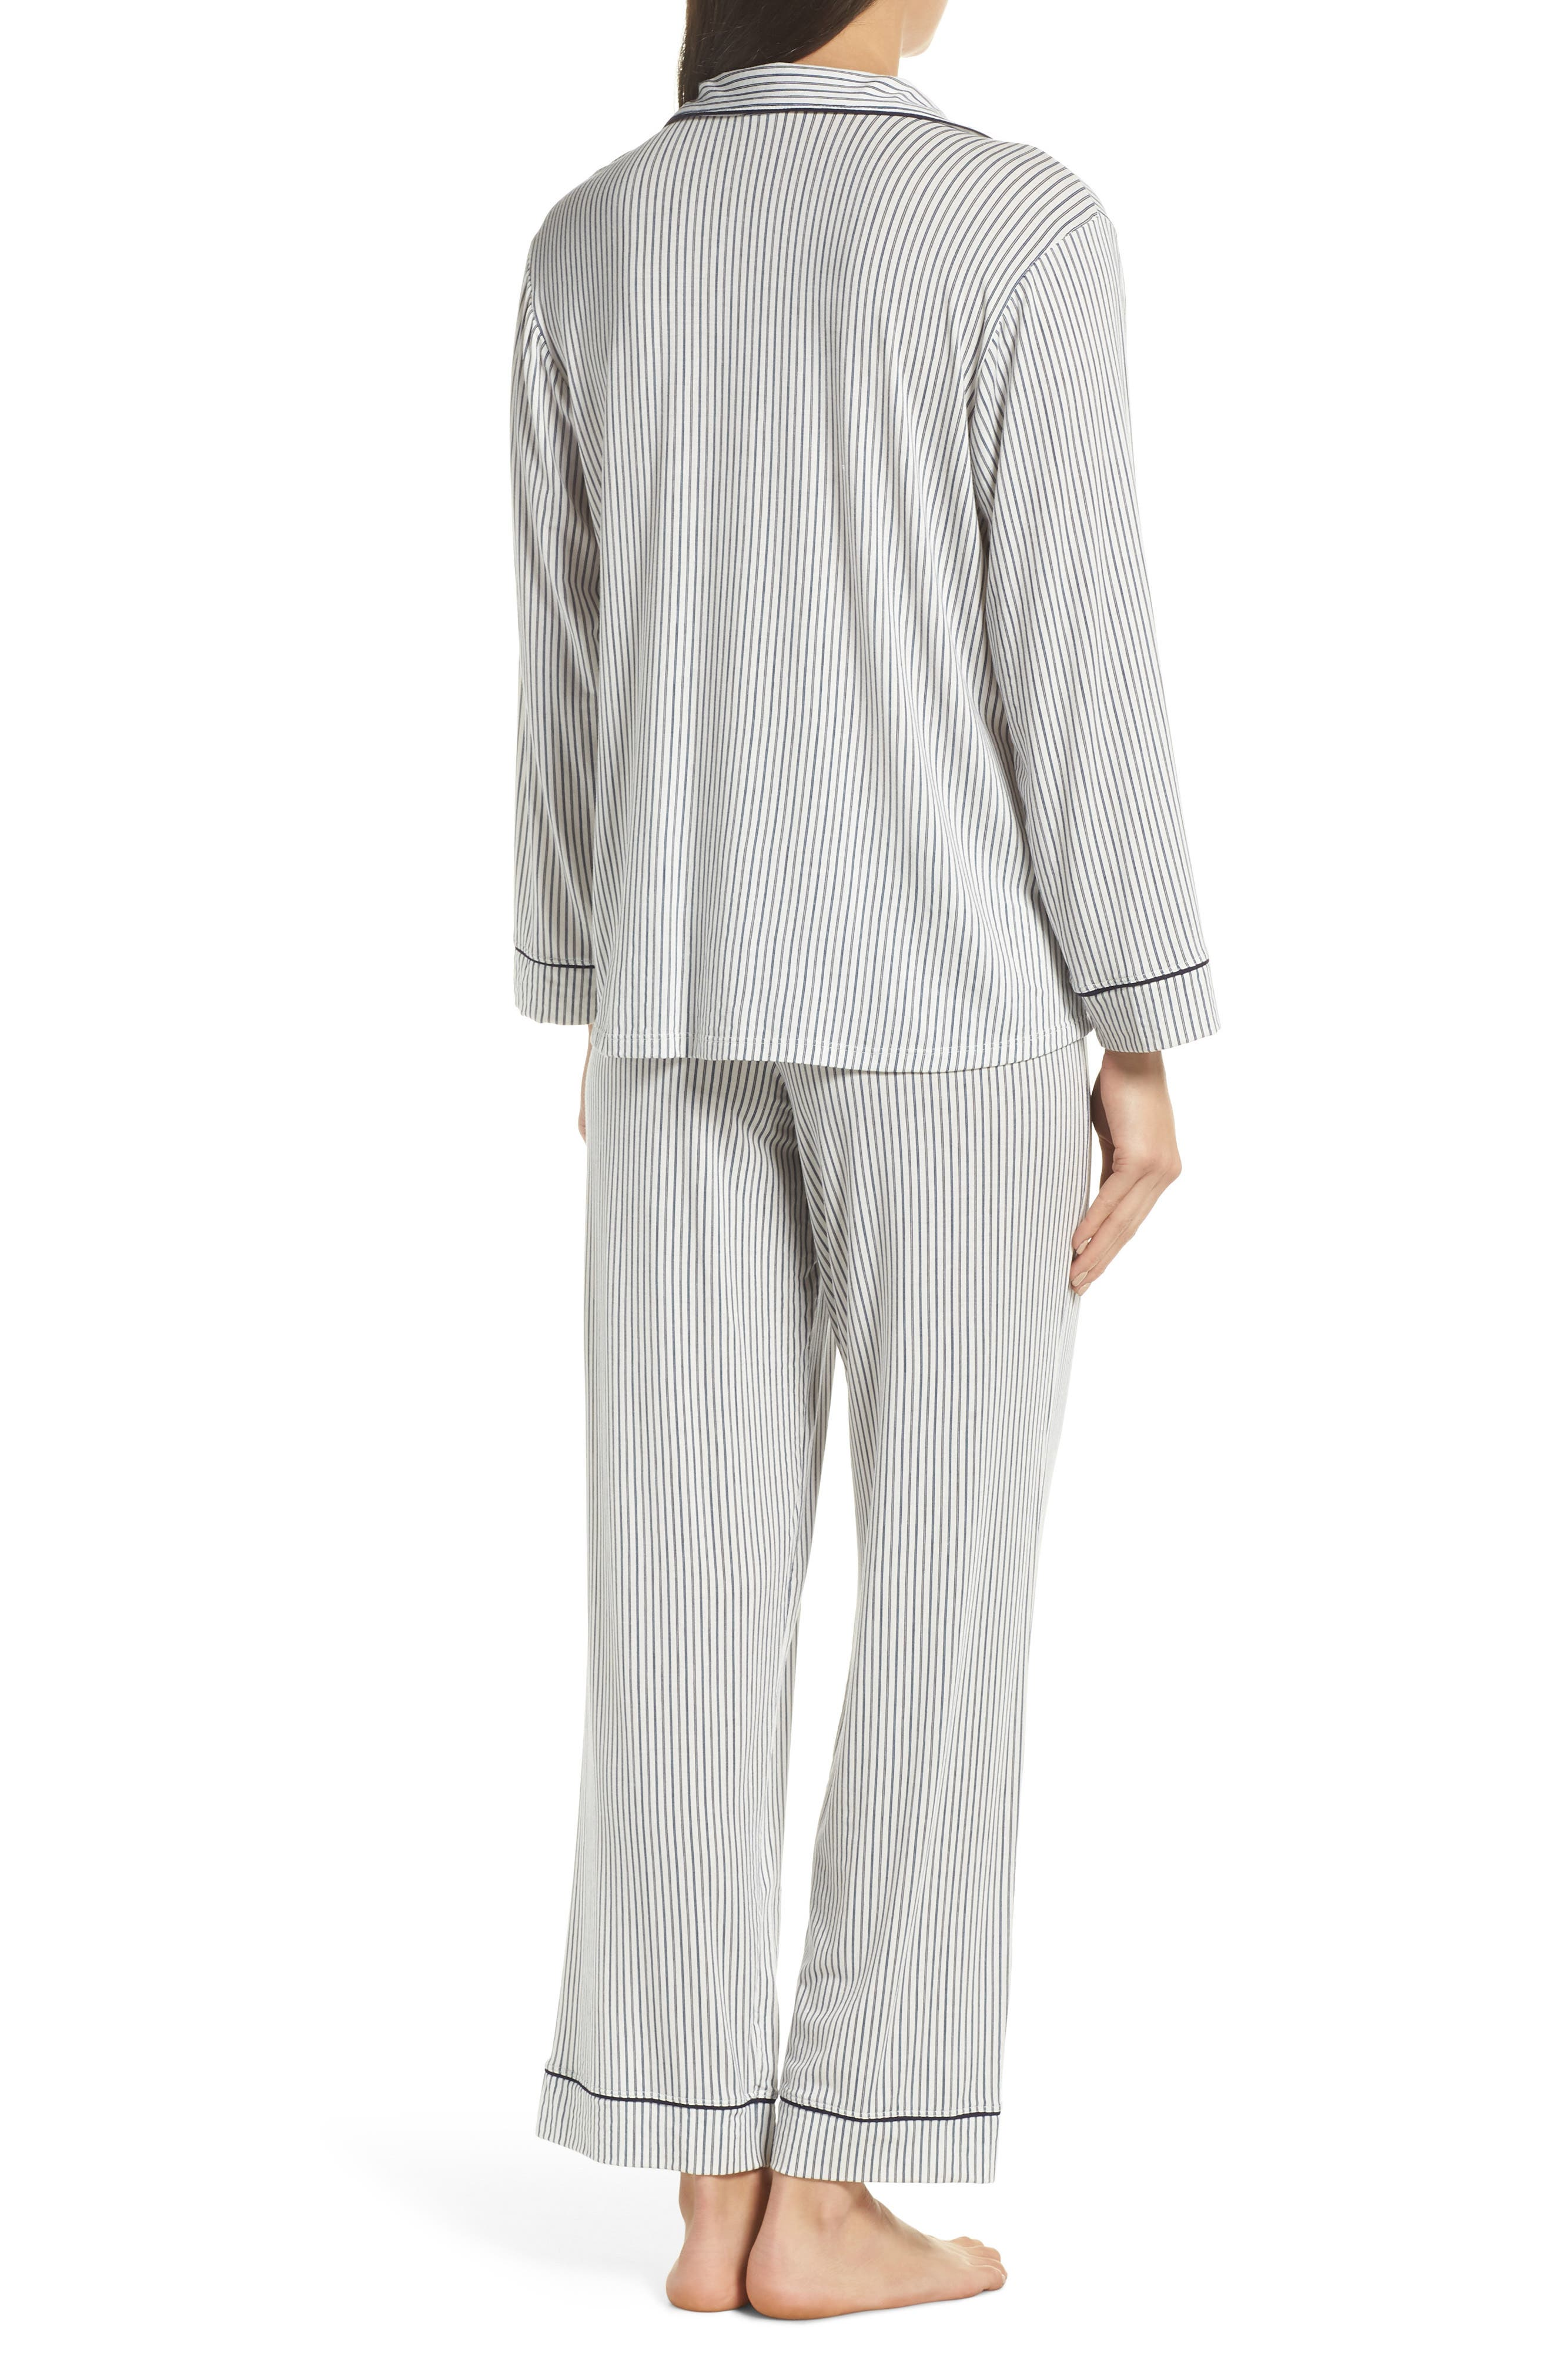 EBERJEY,                             Sleep Chic Pajamas,                             Alternate thumbnail 2, color,                             NORDIC STRPS/ NORTHERN LIGHTS